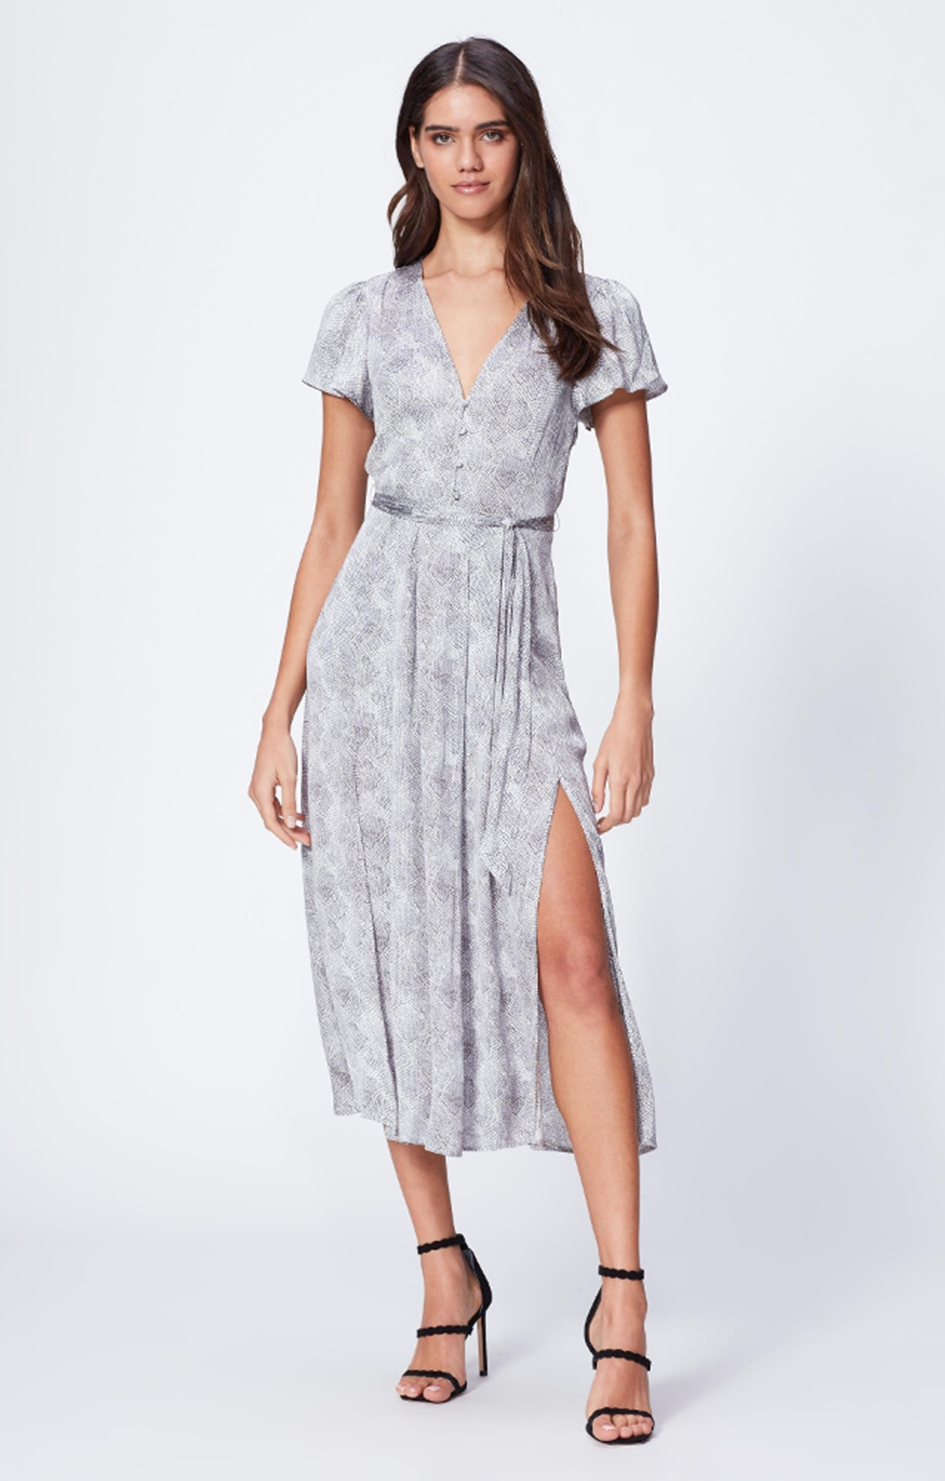 Alayna Dress - Paige